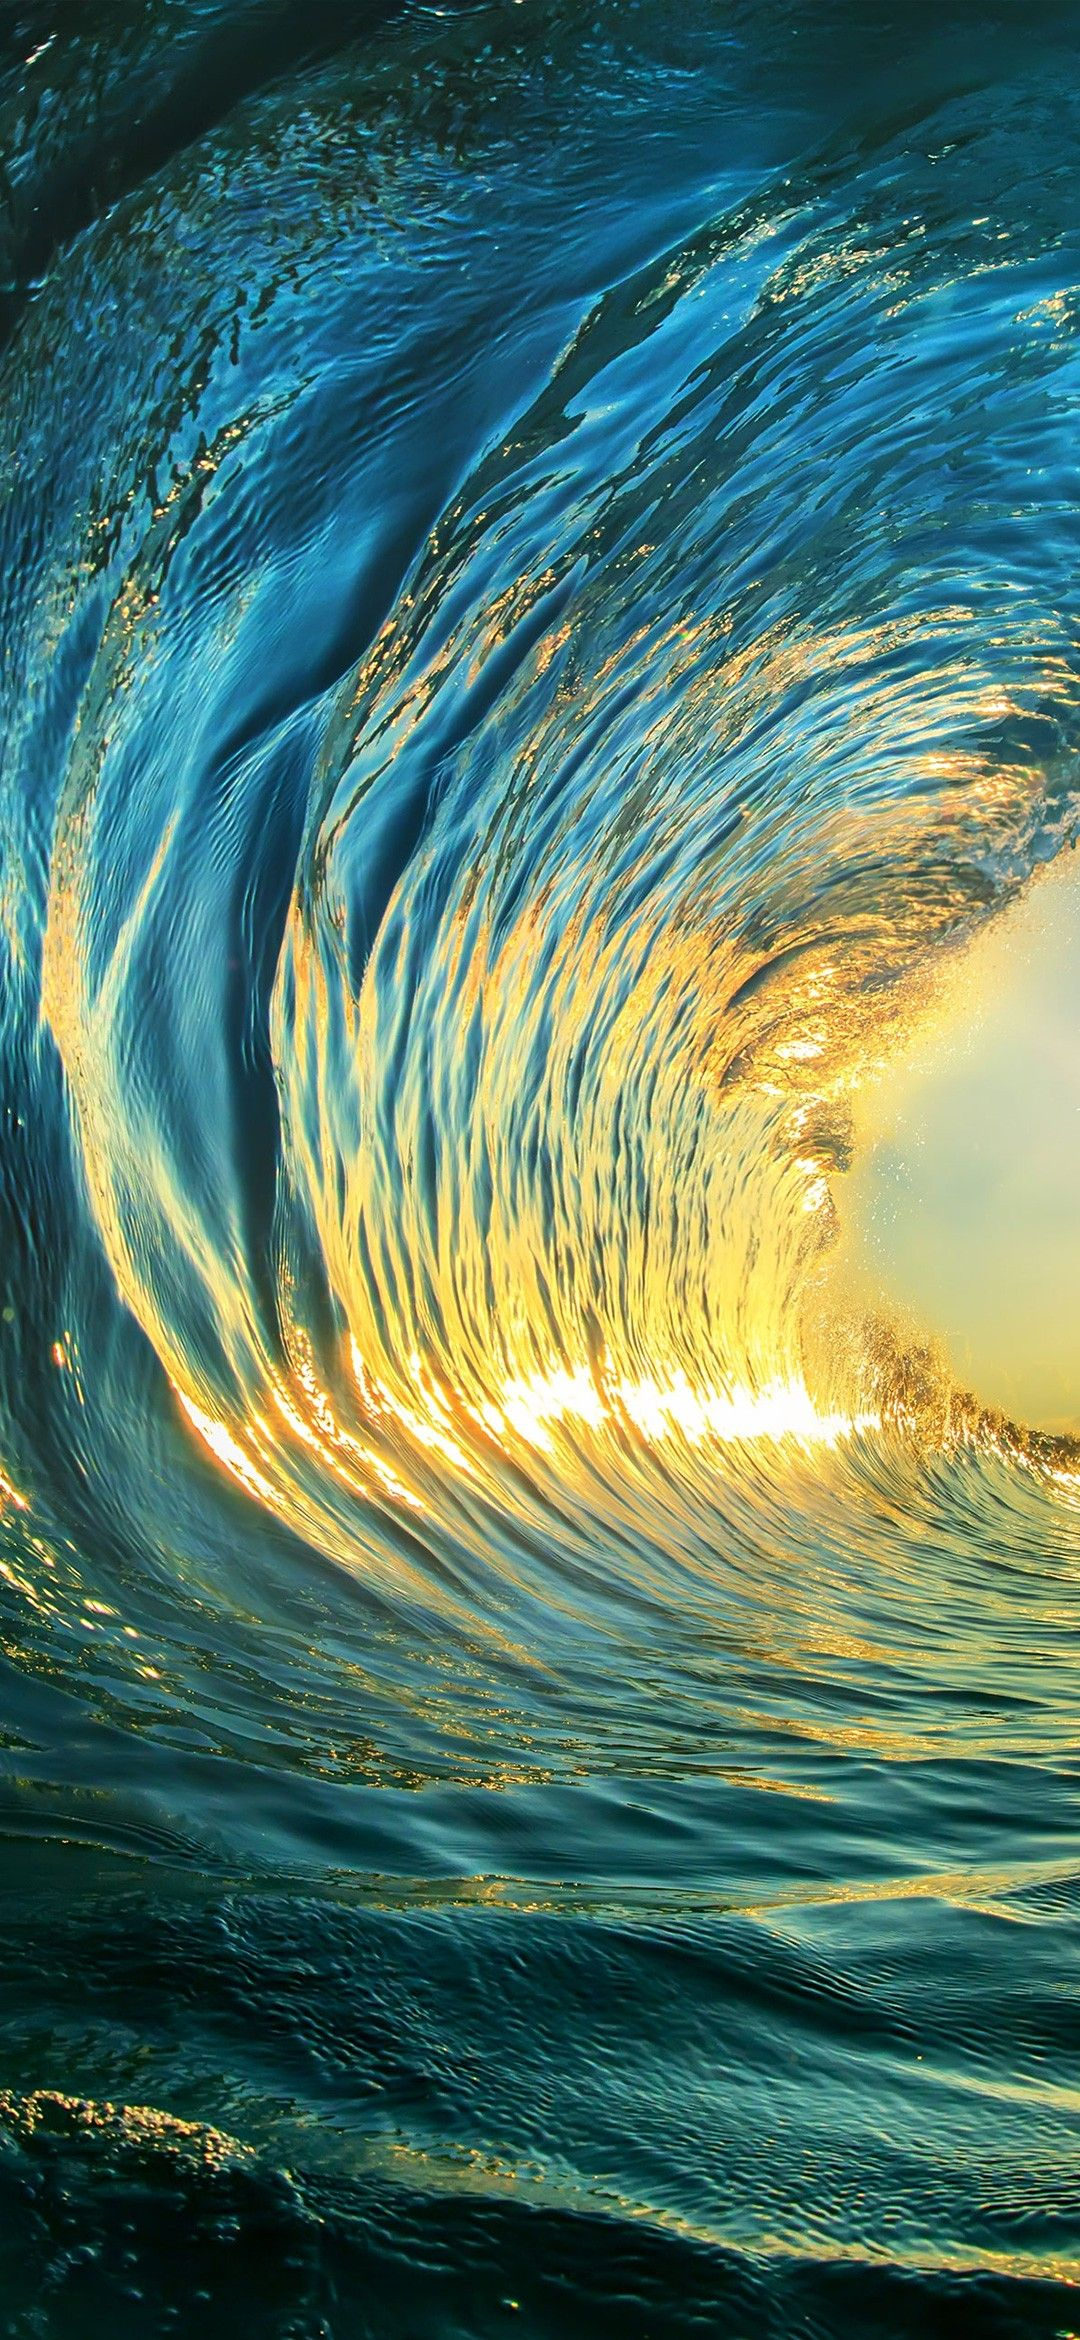 Huawei Hd Wallpaper Waves Wallpaper Huawei Wallpapers Ocean Art